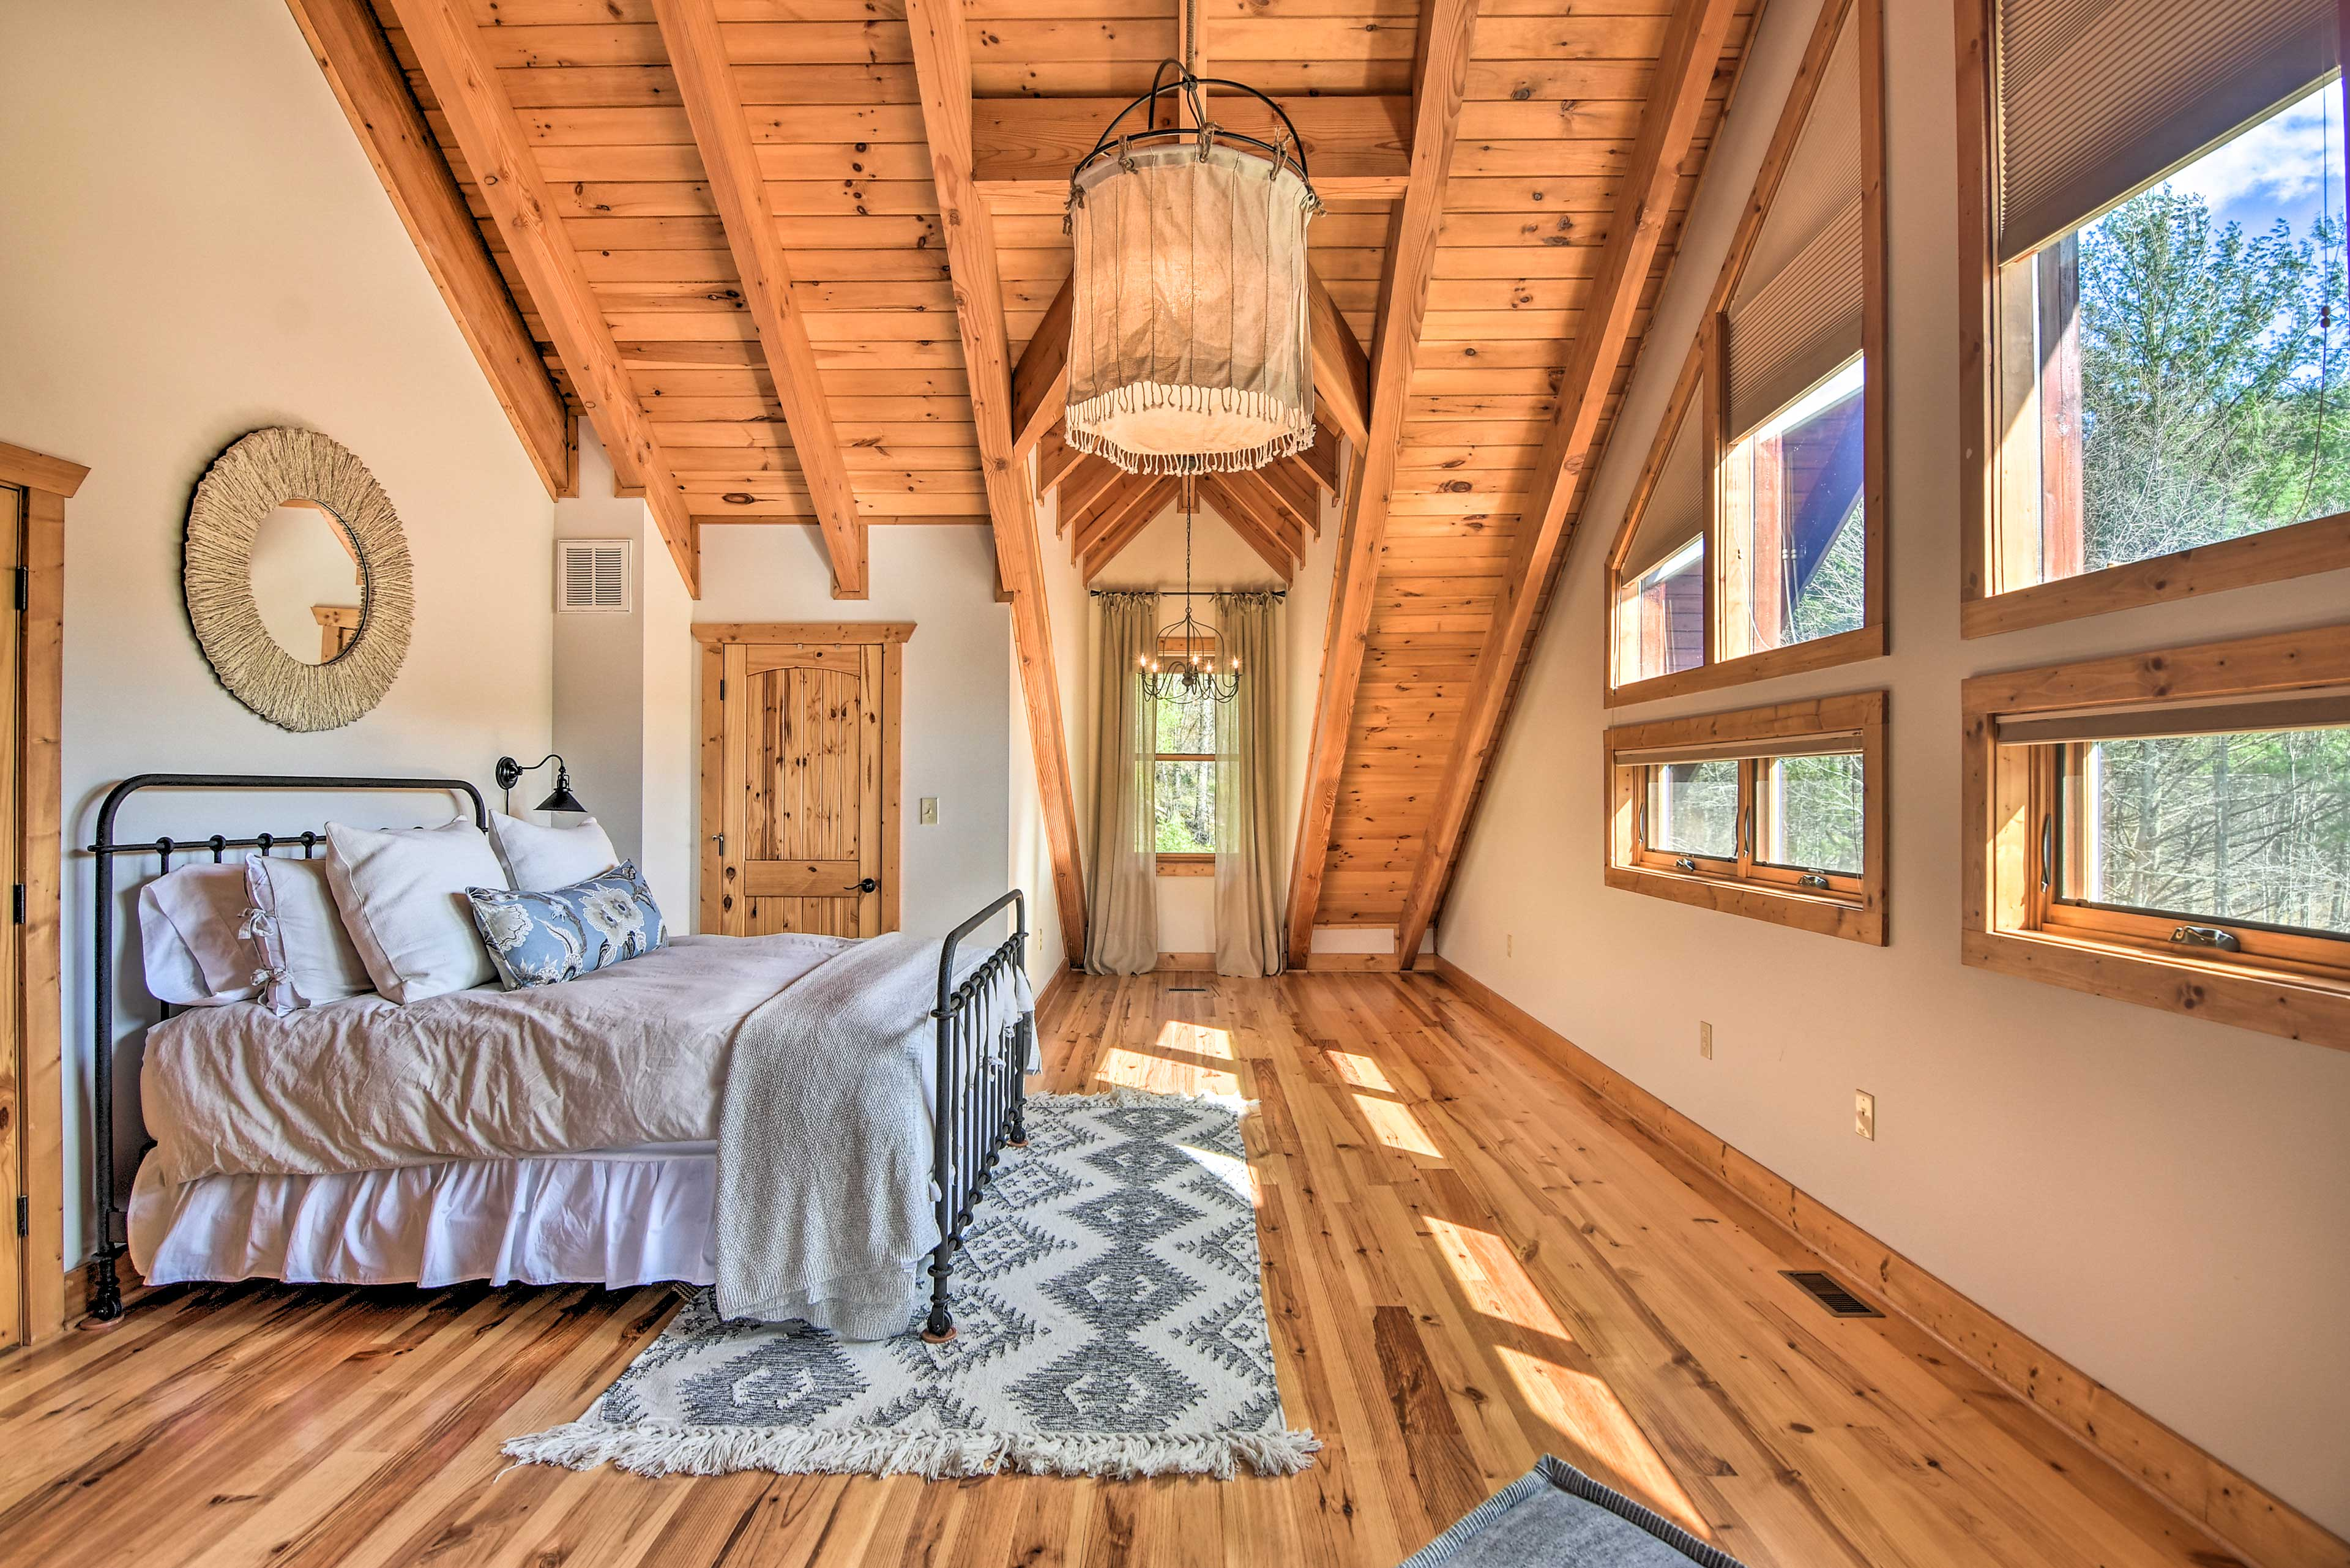 Wake up to sunlight streaming in on this lofted queen-sized bed.